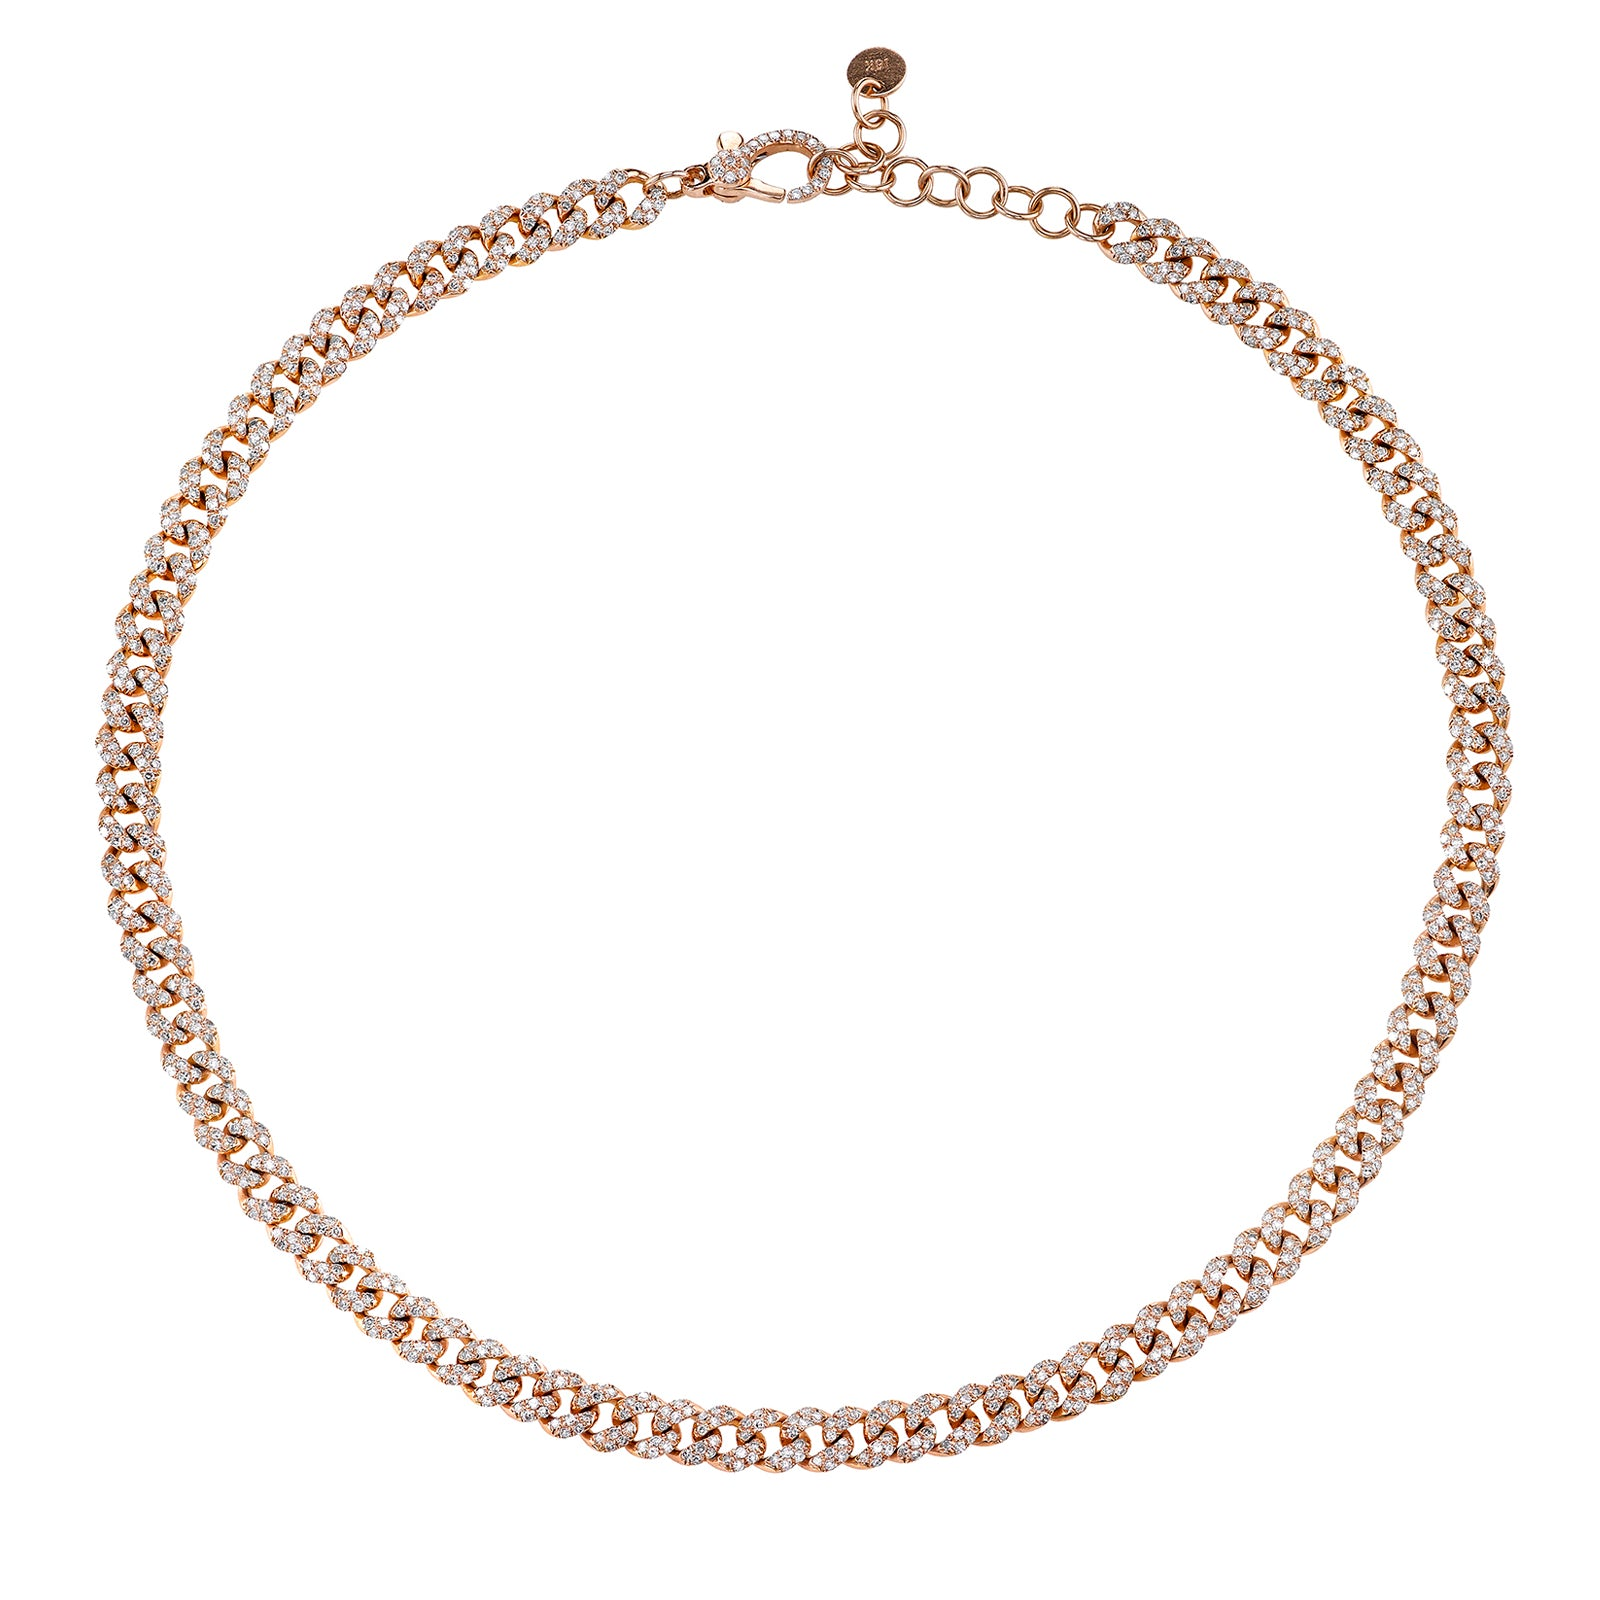 Shay Mini Diamond Link Necklace - Rose Gold - Necklaces - Broken English Jewelry